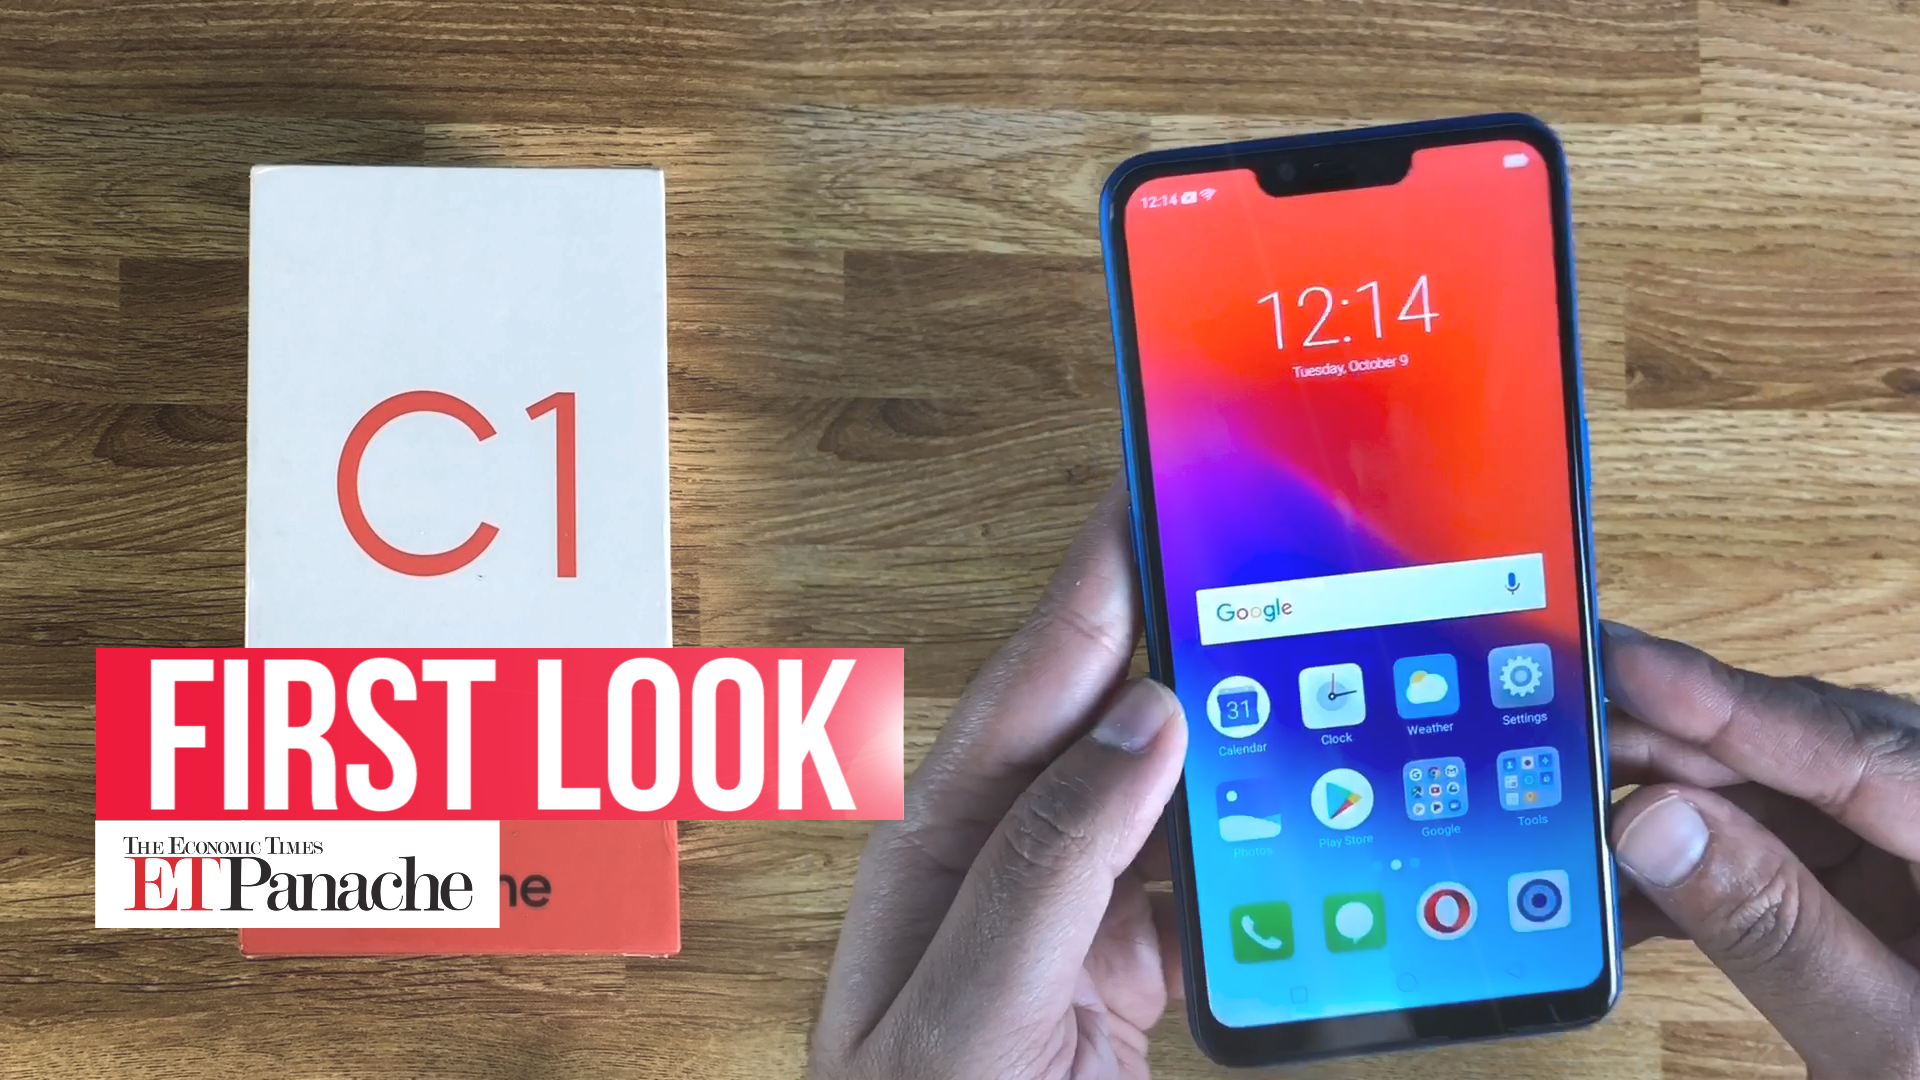 Watch: Unboxing of Oppo's cheapest phone Realme C1